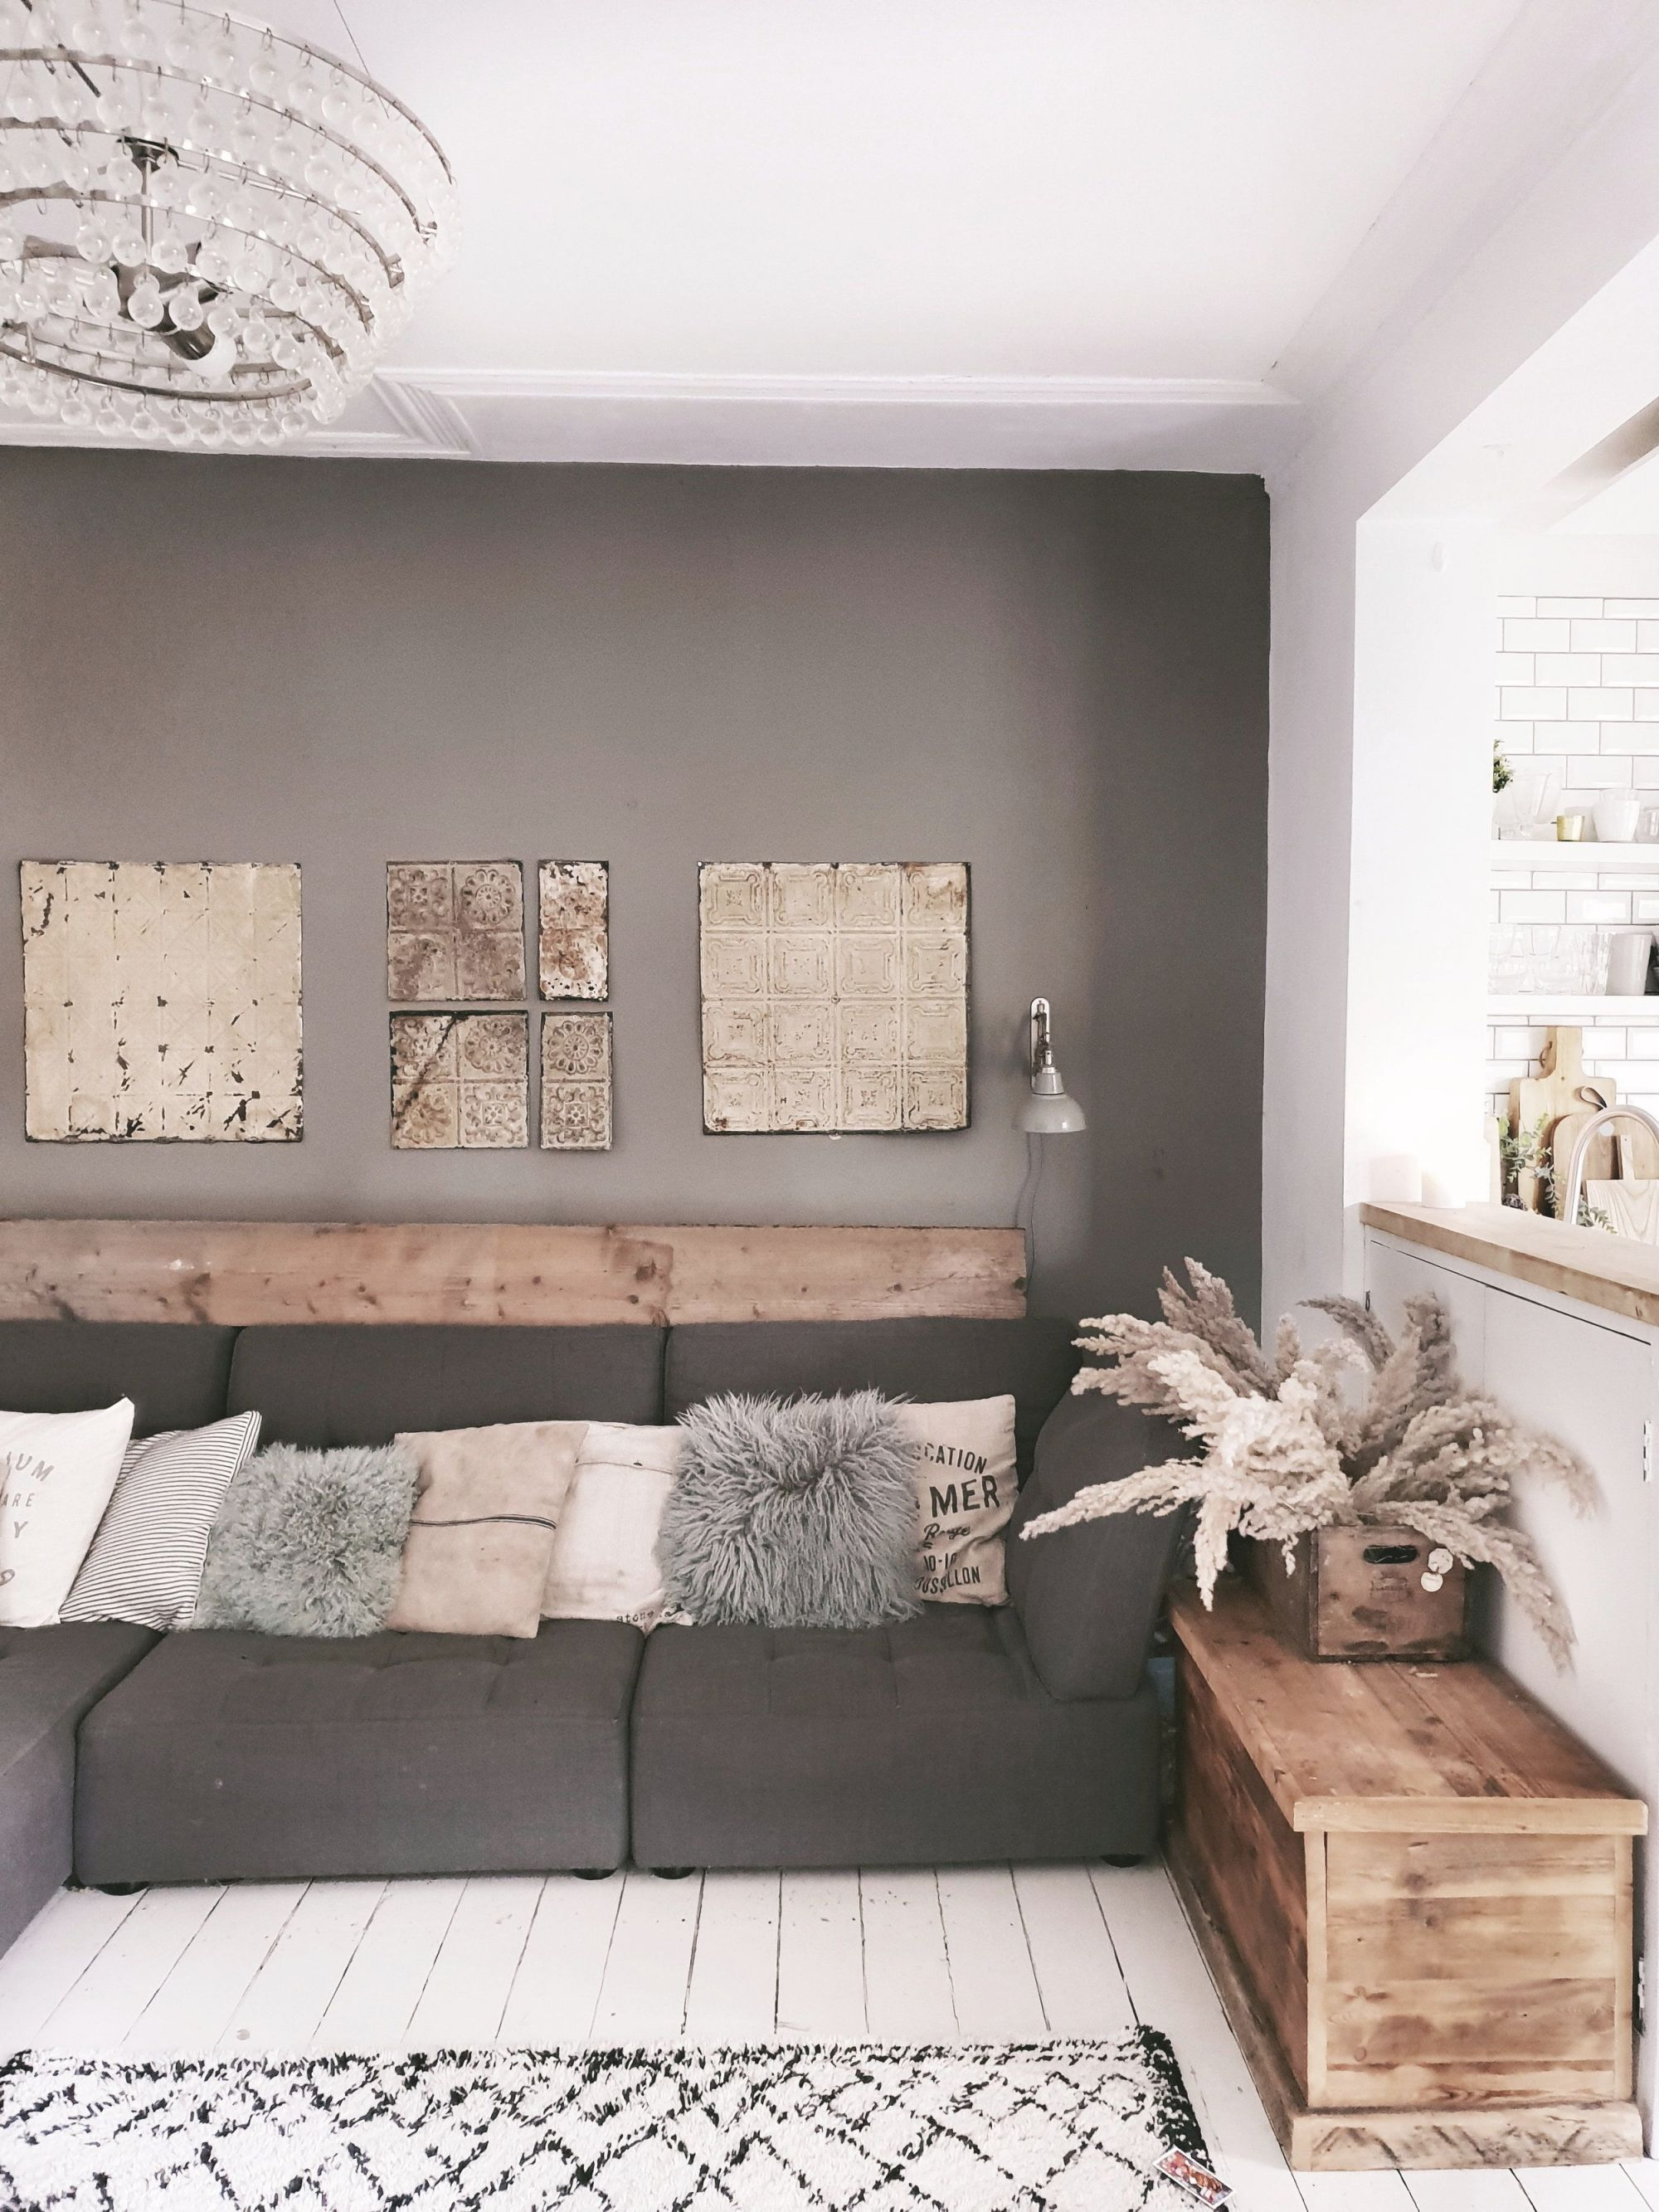 My Living Room Makeover Plans | Potential Projects | Rugs In within Elegant Monochrome Living Room Decorating Ideas